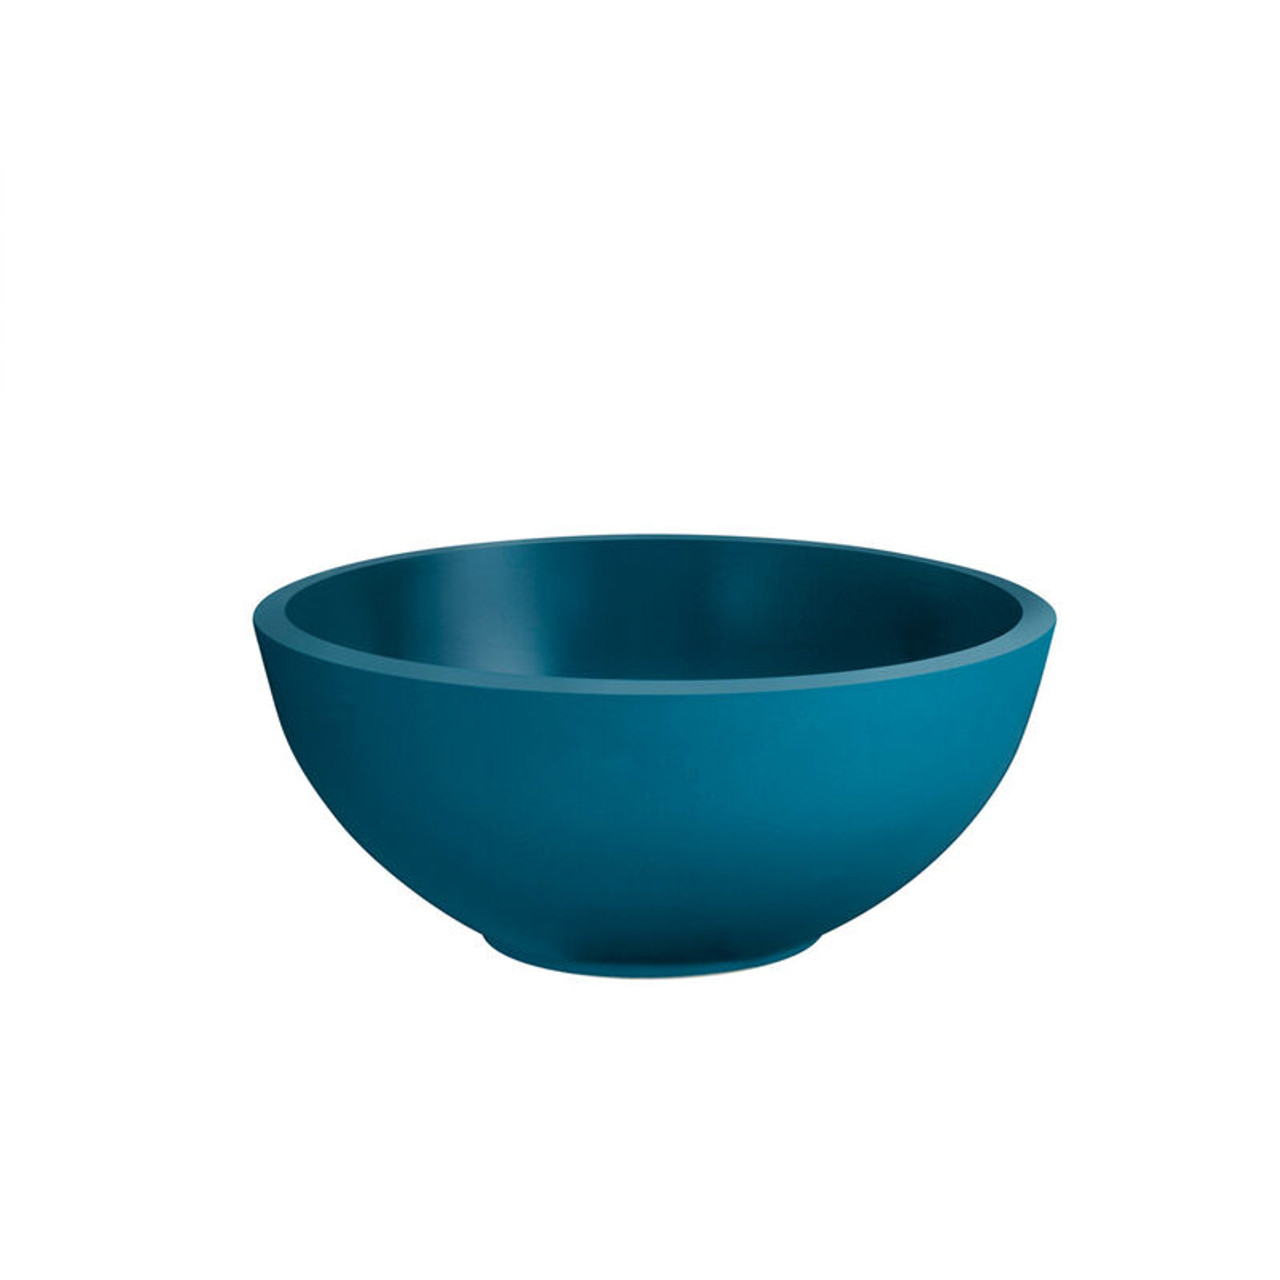 LE CREUSET MINIMALIST CEREAL BOWL - SET OF 4